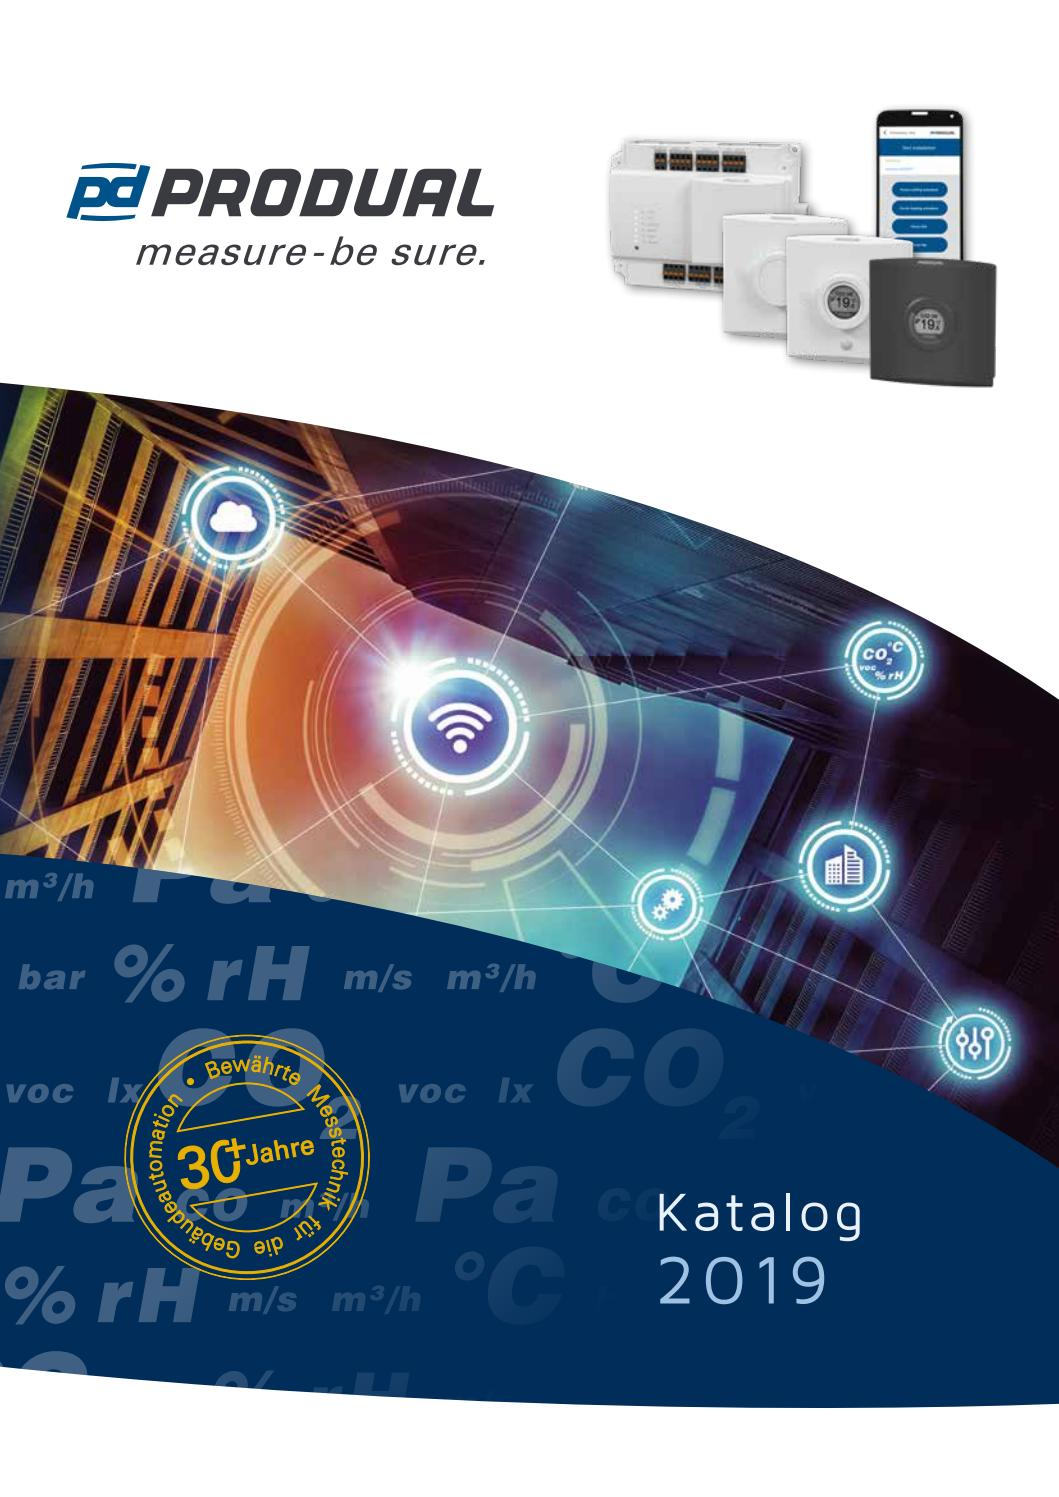 Co Messgerät Heizung Produal Katalog 2019 By Produal Group Issuu